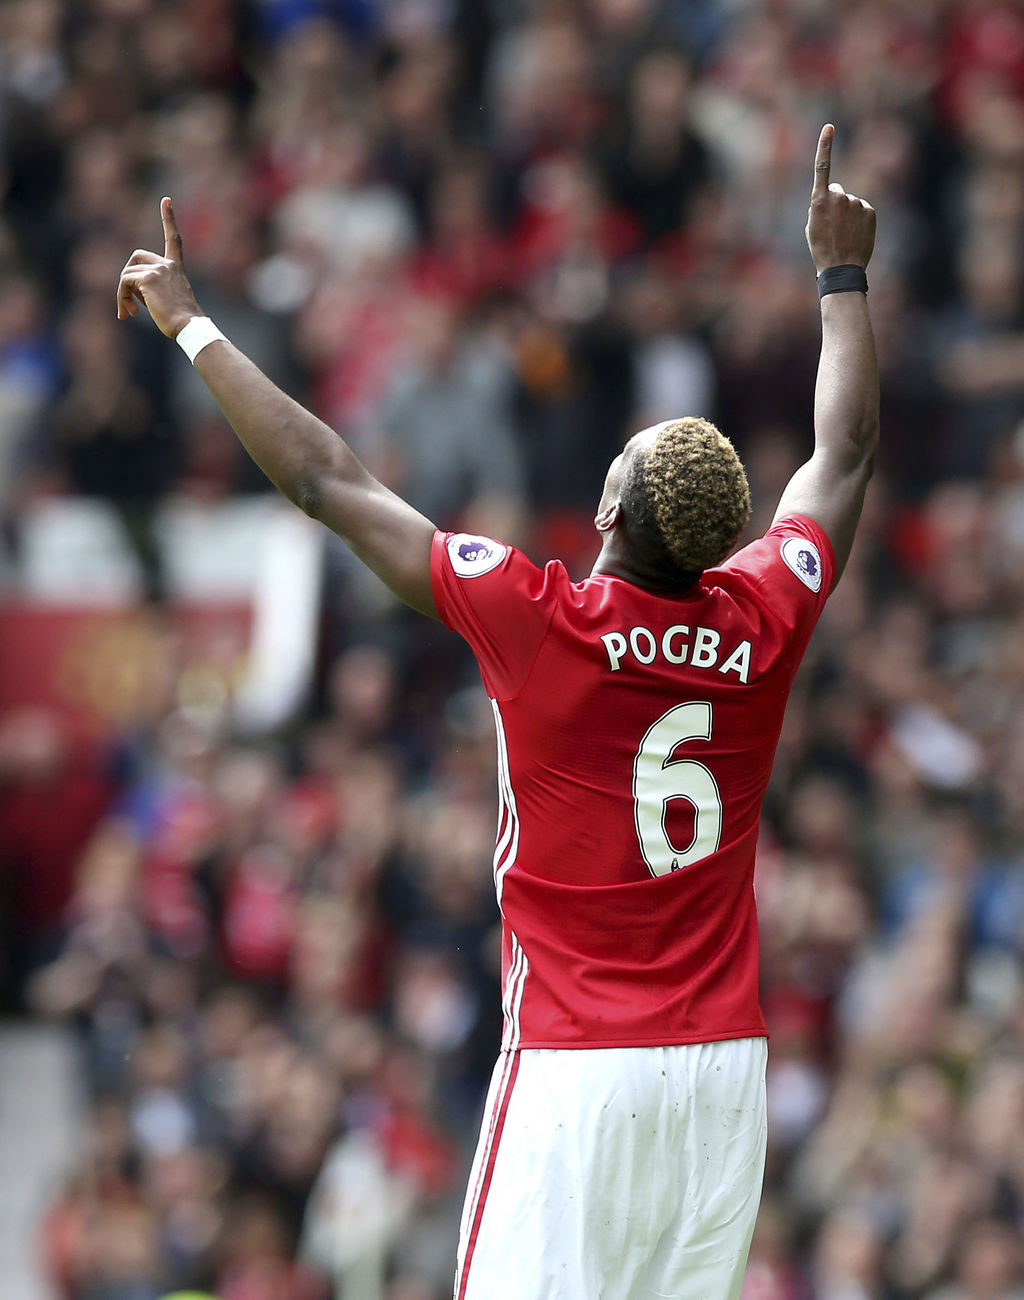 Manchester United's Paul Pogba celebrates scoring his team's second goal of the game, during the English Premier League soccer match be...